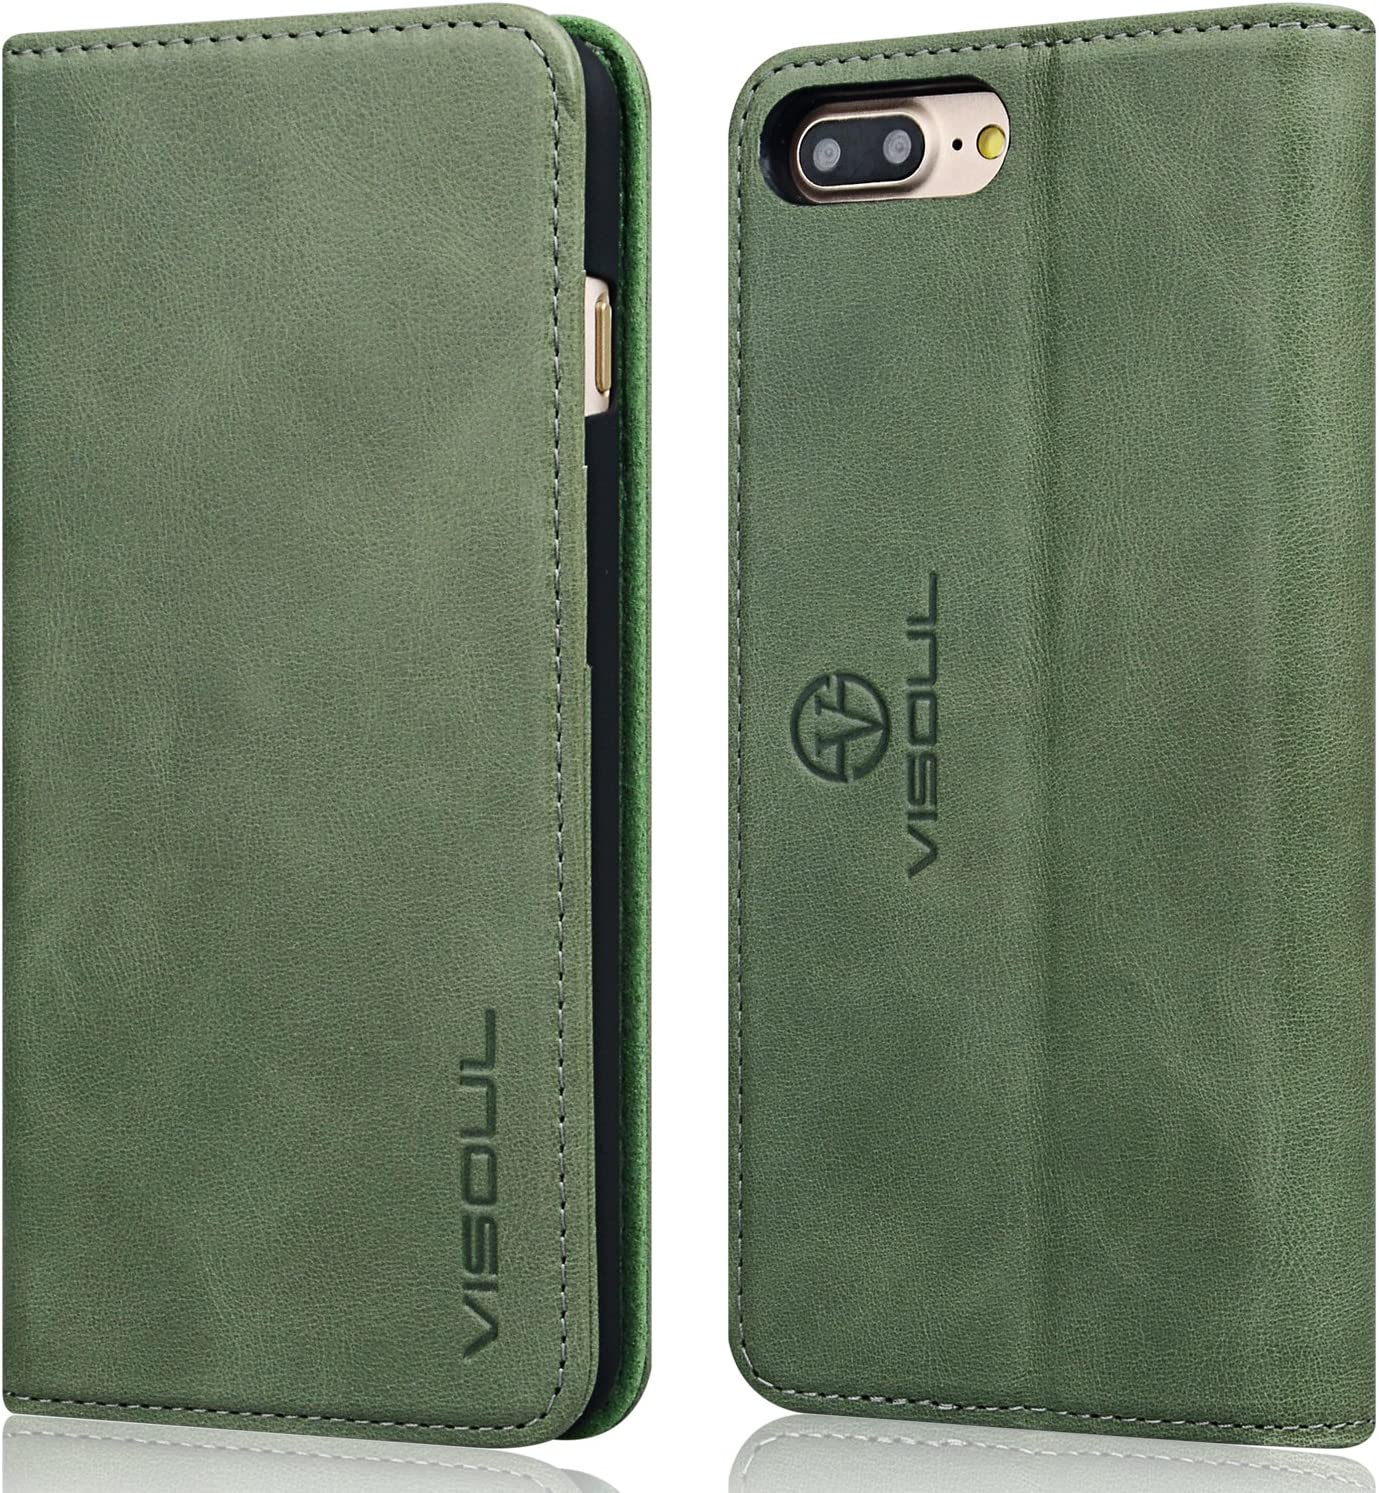 VISOUL iPhone 8 Plus / 7 Plus Leather Folio Case Wallet for Women and Men, Genuine Leather Magnetic Phone Protective Cover with Card Holder and Stand for iPhone 8+/7+ (5.5-inch) (Green)